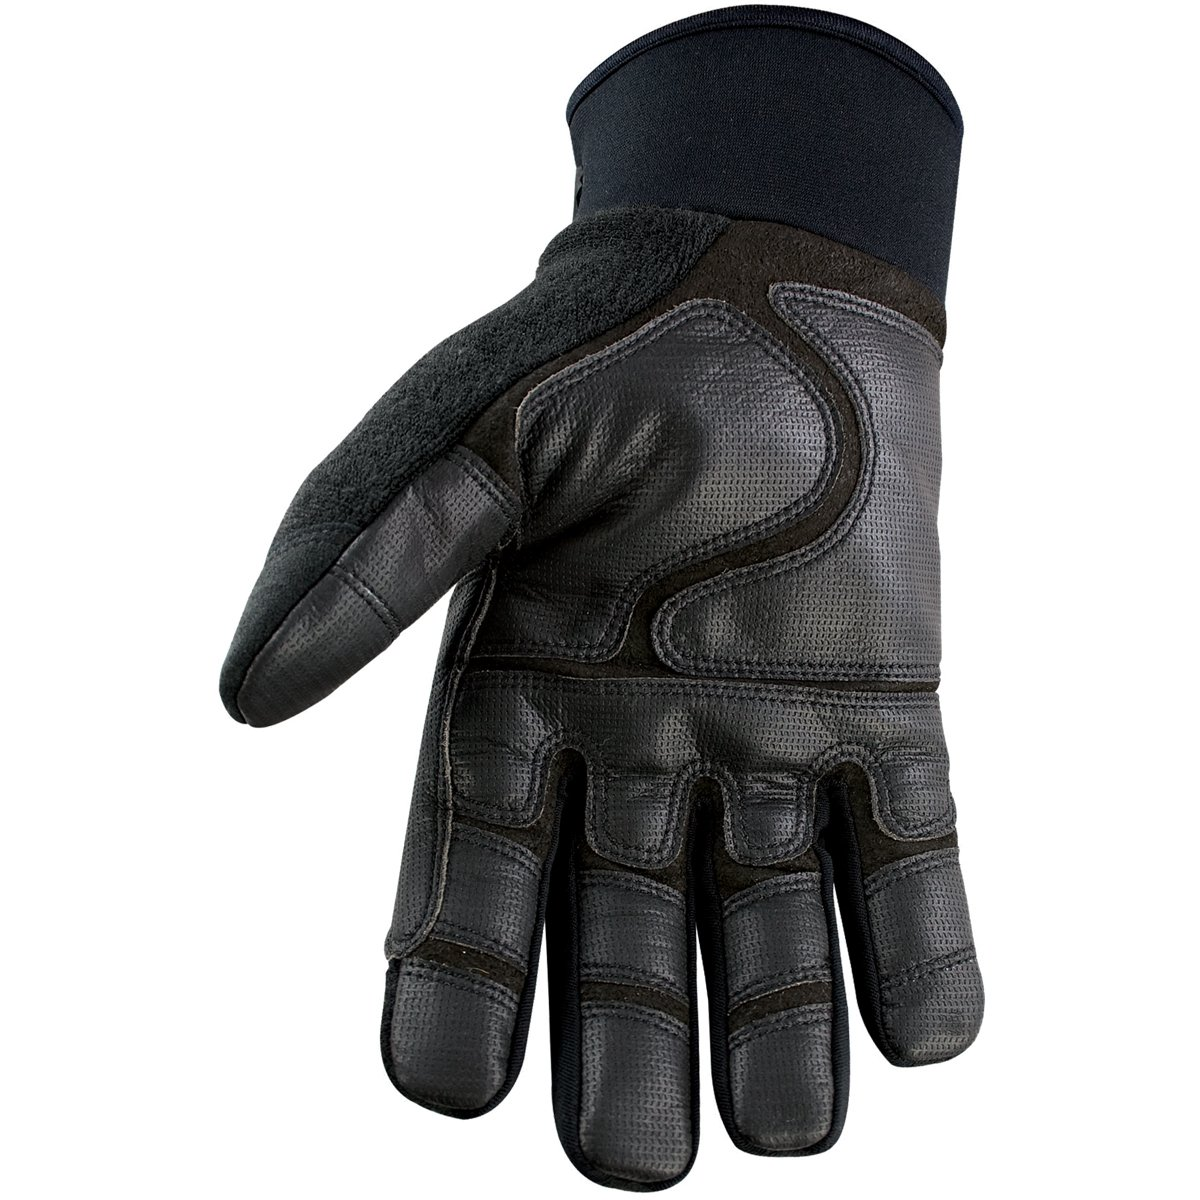 Insulated leather work gloves amazon - Youngstown Glove 08 8450 80 Xxl Military Work Glove Waterproof Winter Xx Large Insulated Work Glvoes Amazon Com